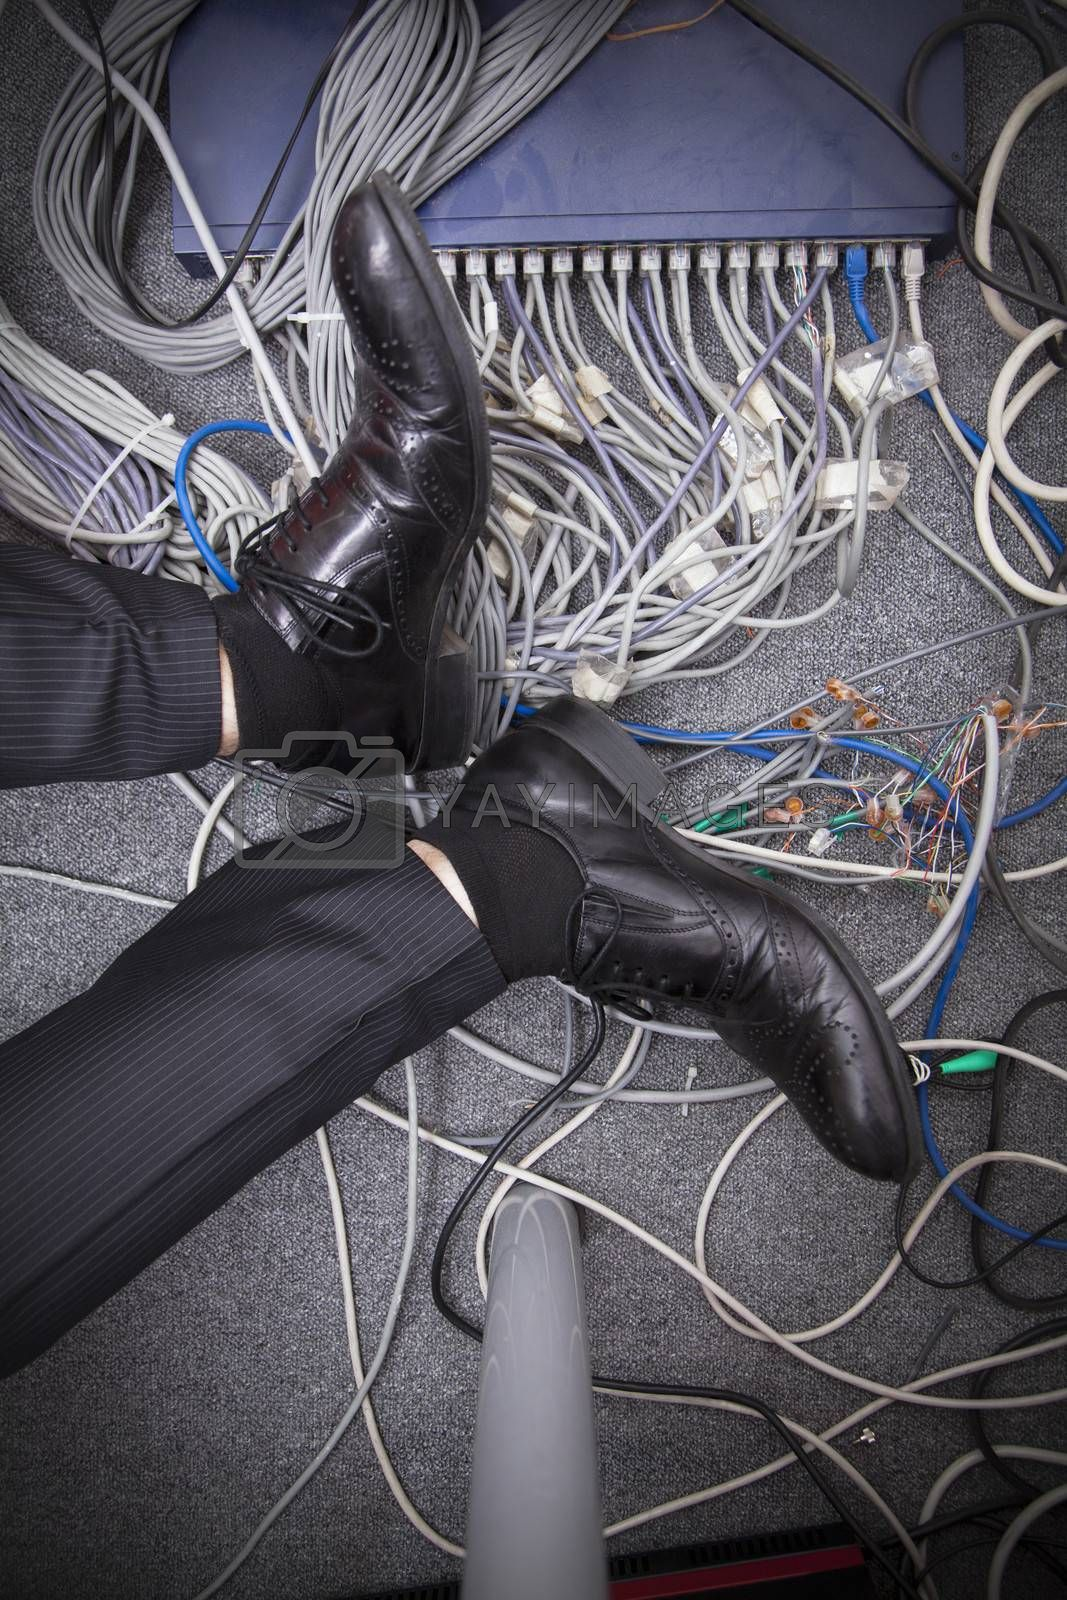 Businessman's feet on the ground surrounded by computer cables